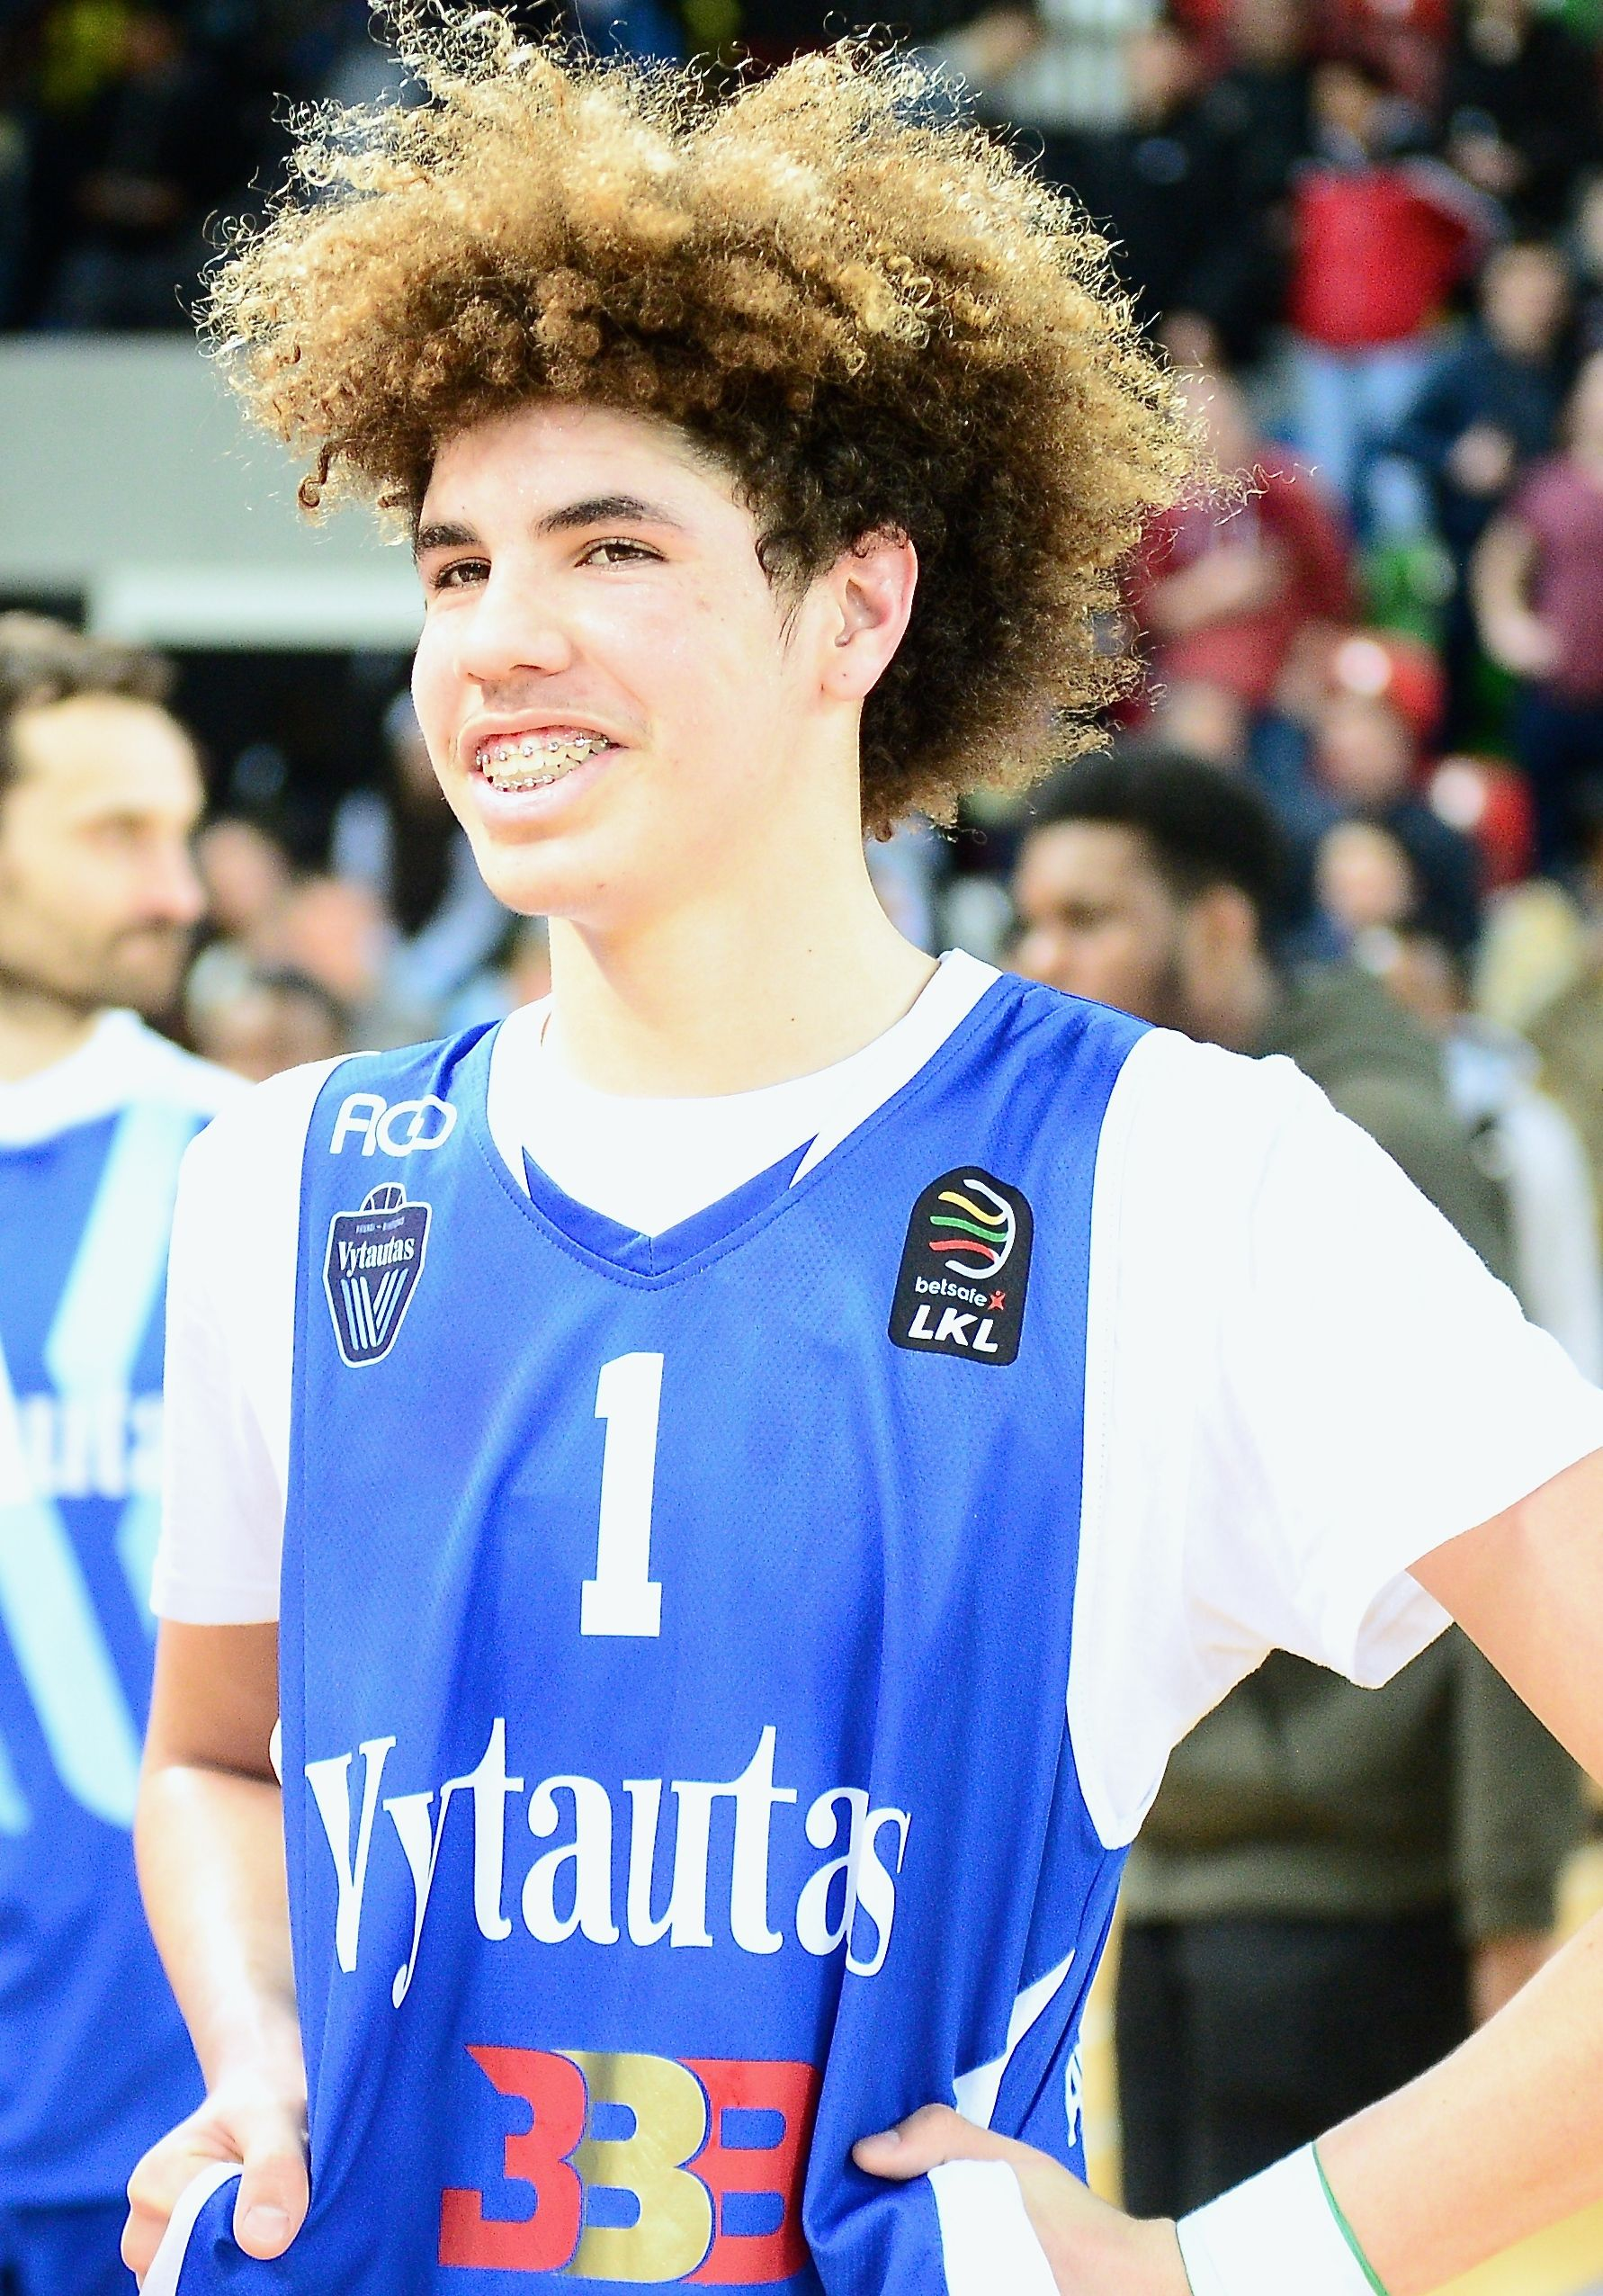 Lamelo Ball Is An American Professional Basketball Player For The Illawarra Hawks Of The National Basketball Leagu Lamelo Ball Basketball Players Liangelo Ball